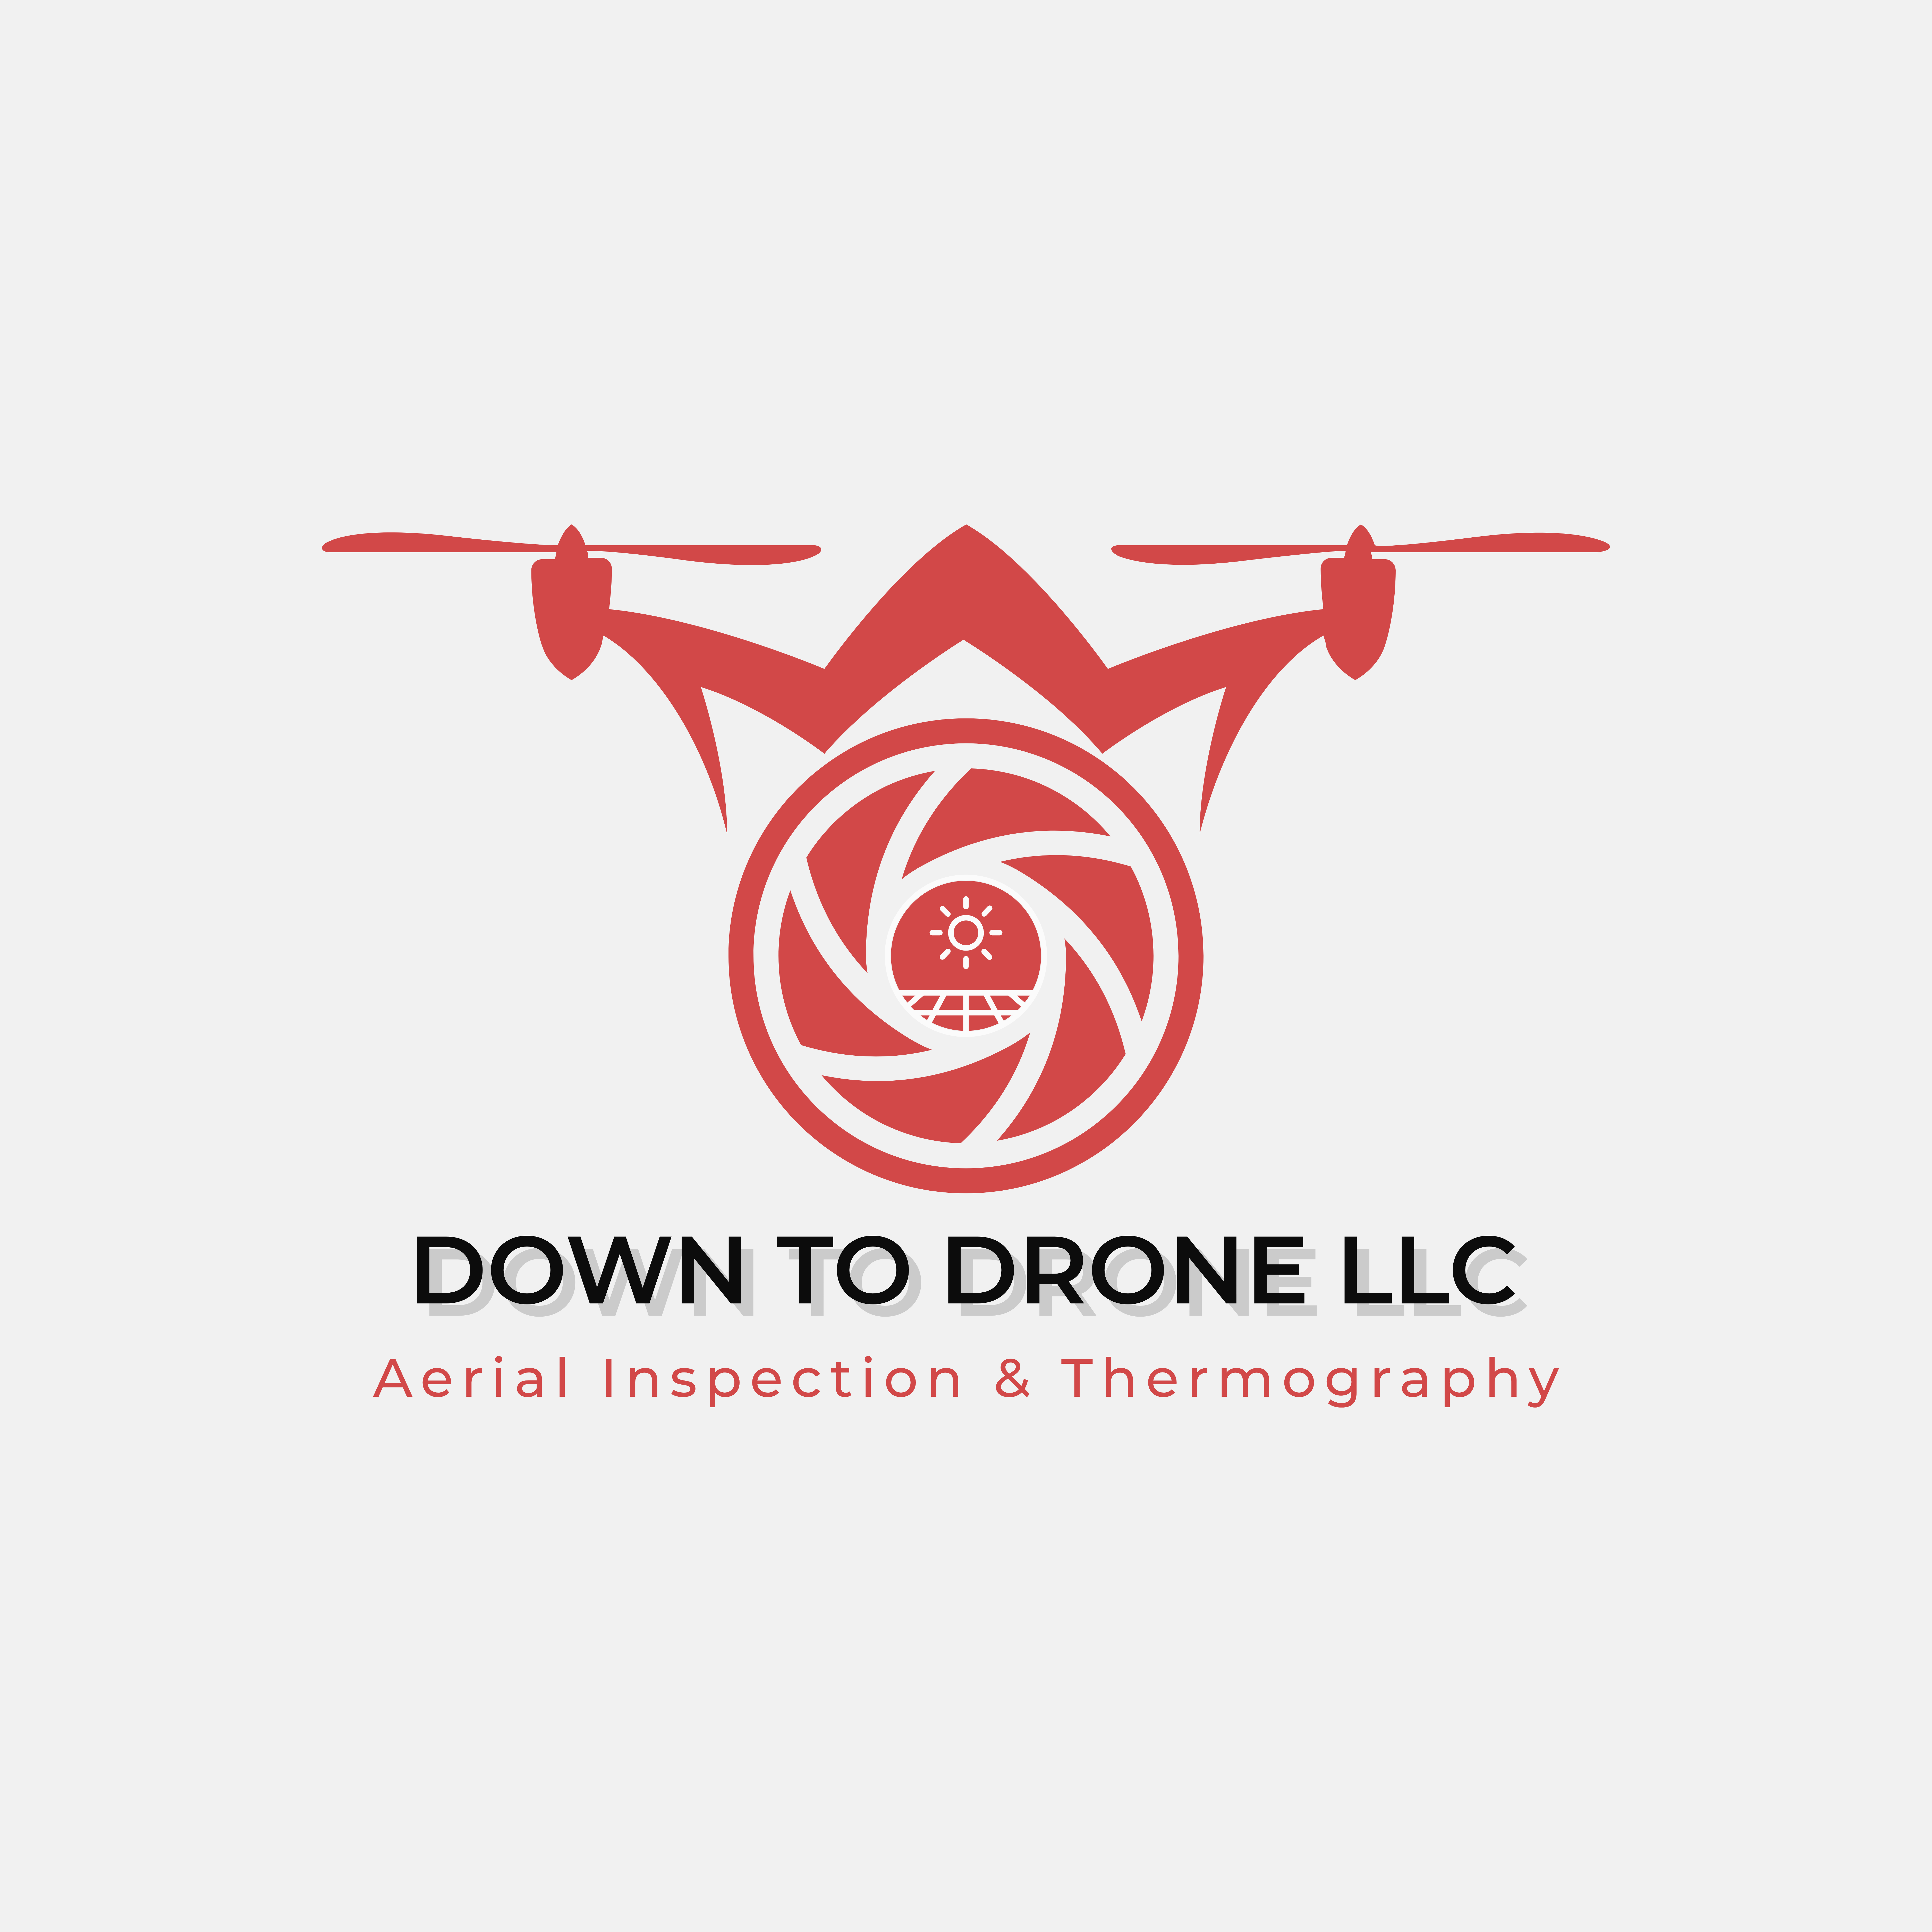 Down To Drone LLC